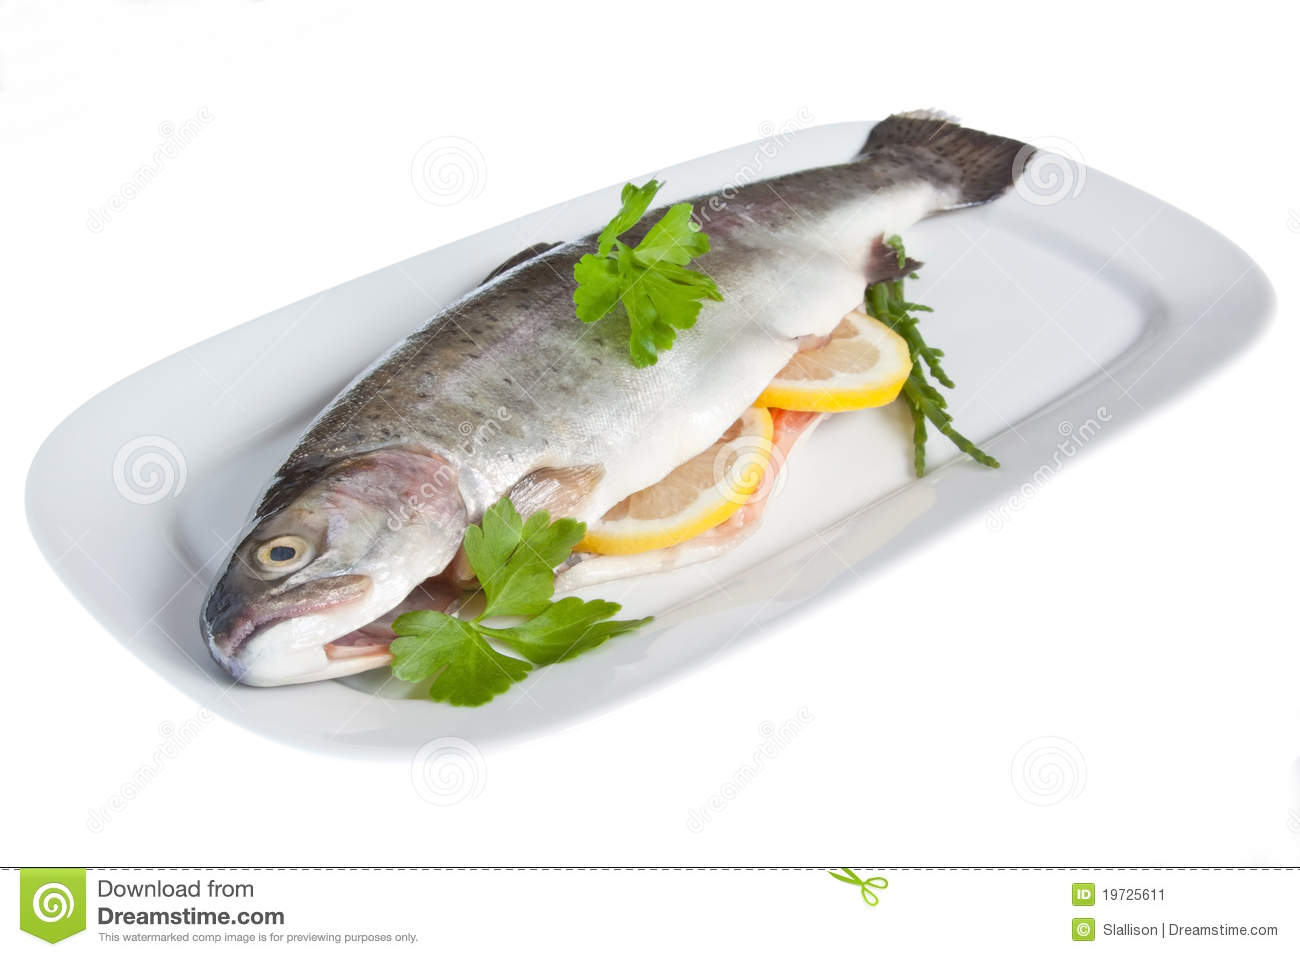 how to cook a dressed rainbow trout